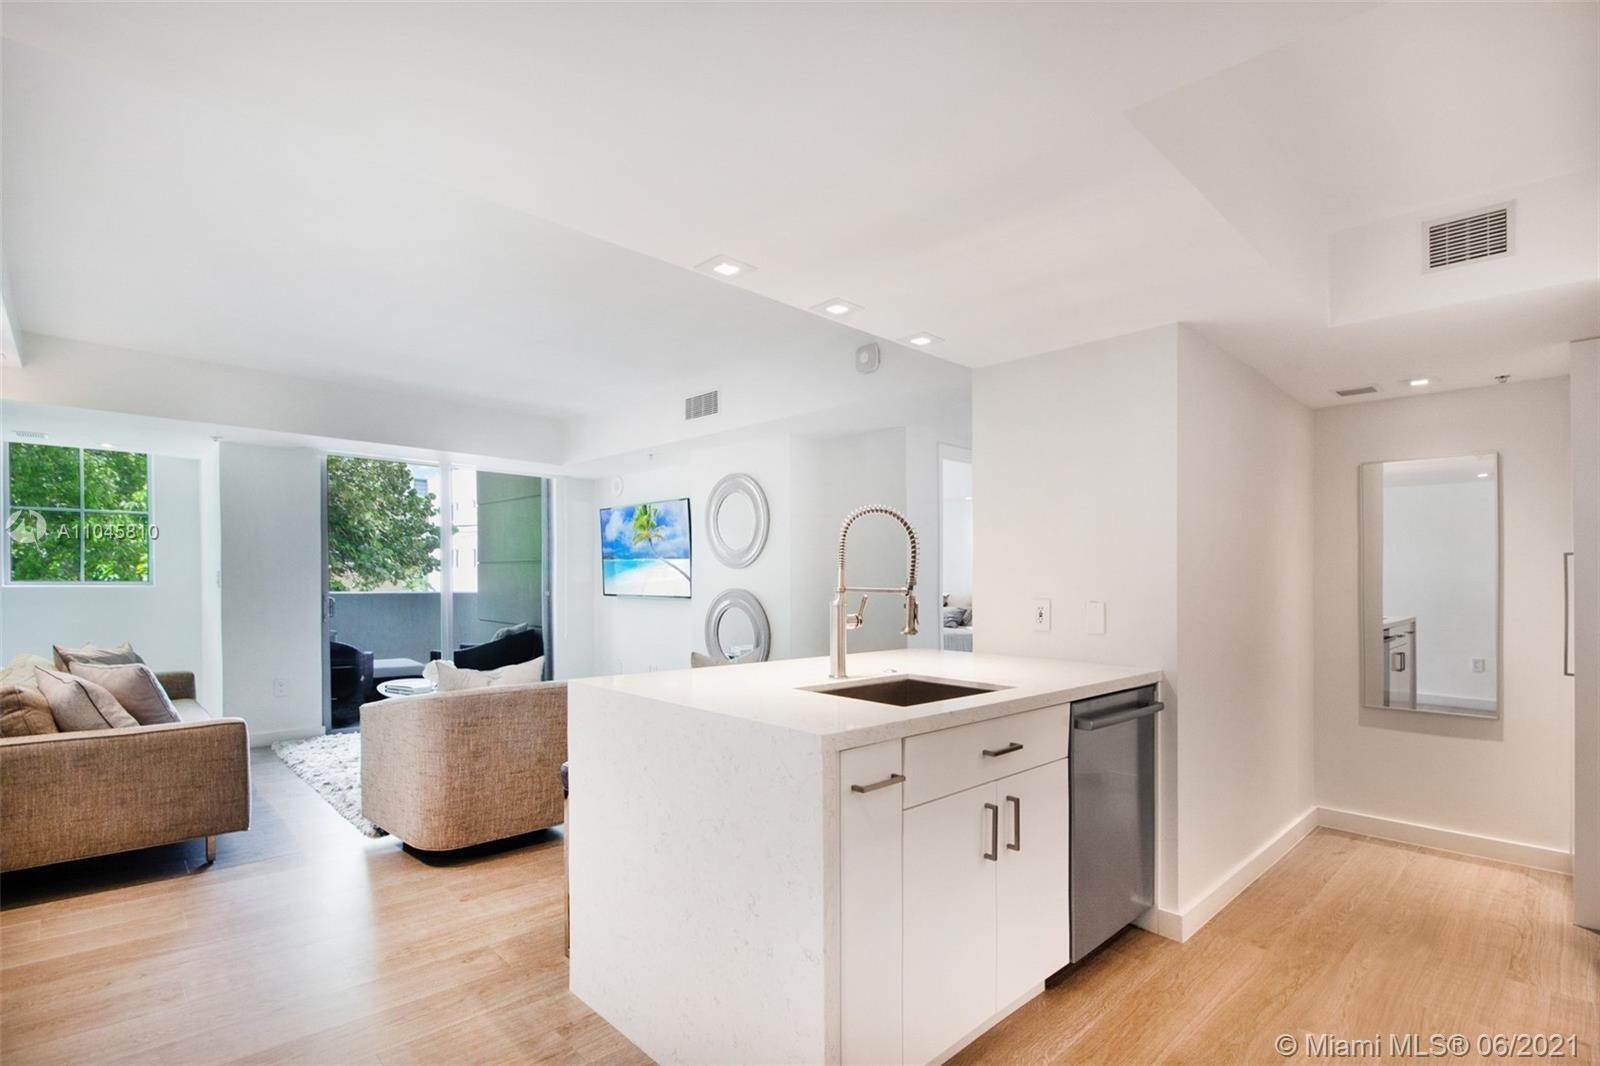 Located in coveted South of Fifth neighborhood, this unique townhome-style fully remodeled residence boasts an open kitchen with Bosch appliances and quartz countertops, custom blinds and tile flooring. Featuring direct entrance from the street, as well as an interior entrance, this home is ideal for surfers and dog owners. This beautiful unit also comes with two large storage rooms, and can be delivered fully furnished for an additional cost. The Cosmopolitan is a full service building with 24/7 security, heated pool with Jacuzzi, fitness center, & club-room. Walk 2 blocks to the beach, fine dining, & South Pointe Park. Building is financially secure.